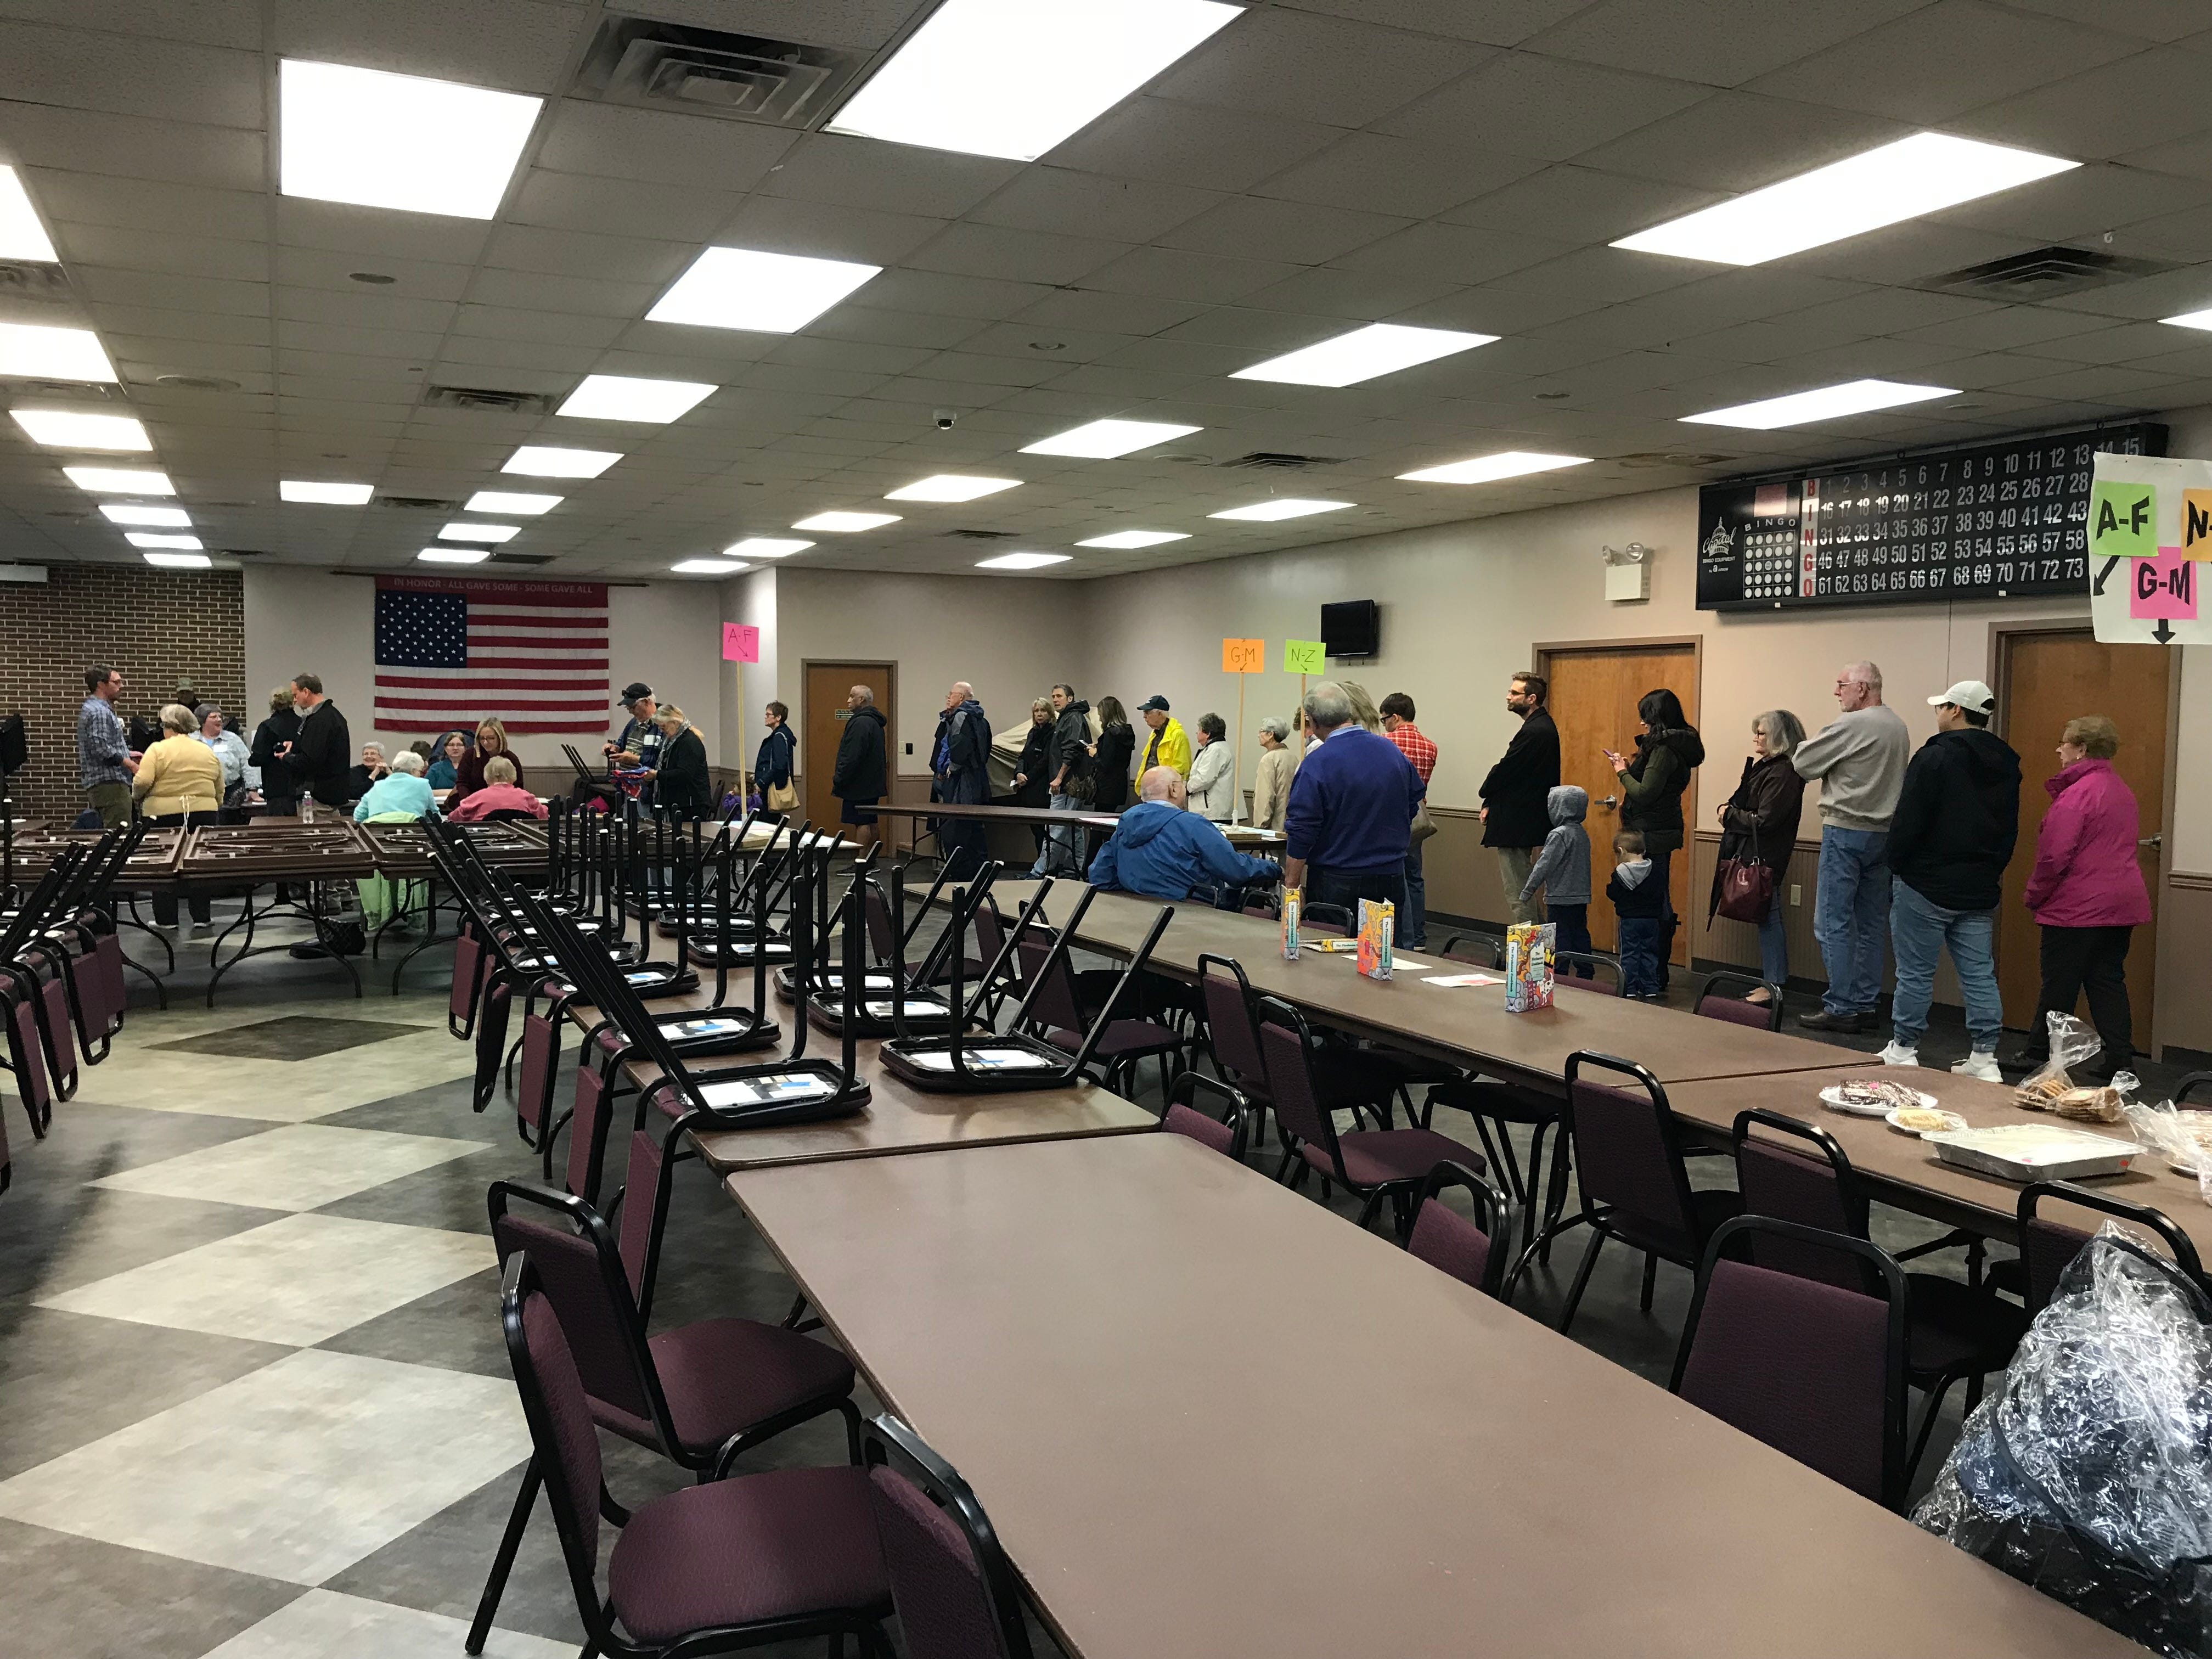 Voters stand in line at the polls located at the Campbelltown Fire Co. social hall Nov. 6, 2018. By 10:45 a.m., 894 voters had voted at the fire hall, according to Election Judge Bev Kauffman. The voter turnout by that time in 2018 was only a little less than the turnout at the same time for the 2016 presidential election, Kauffman said.